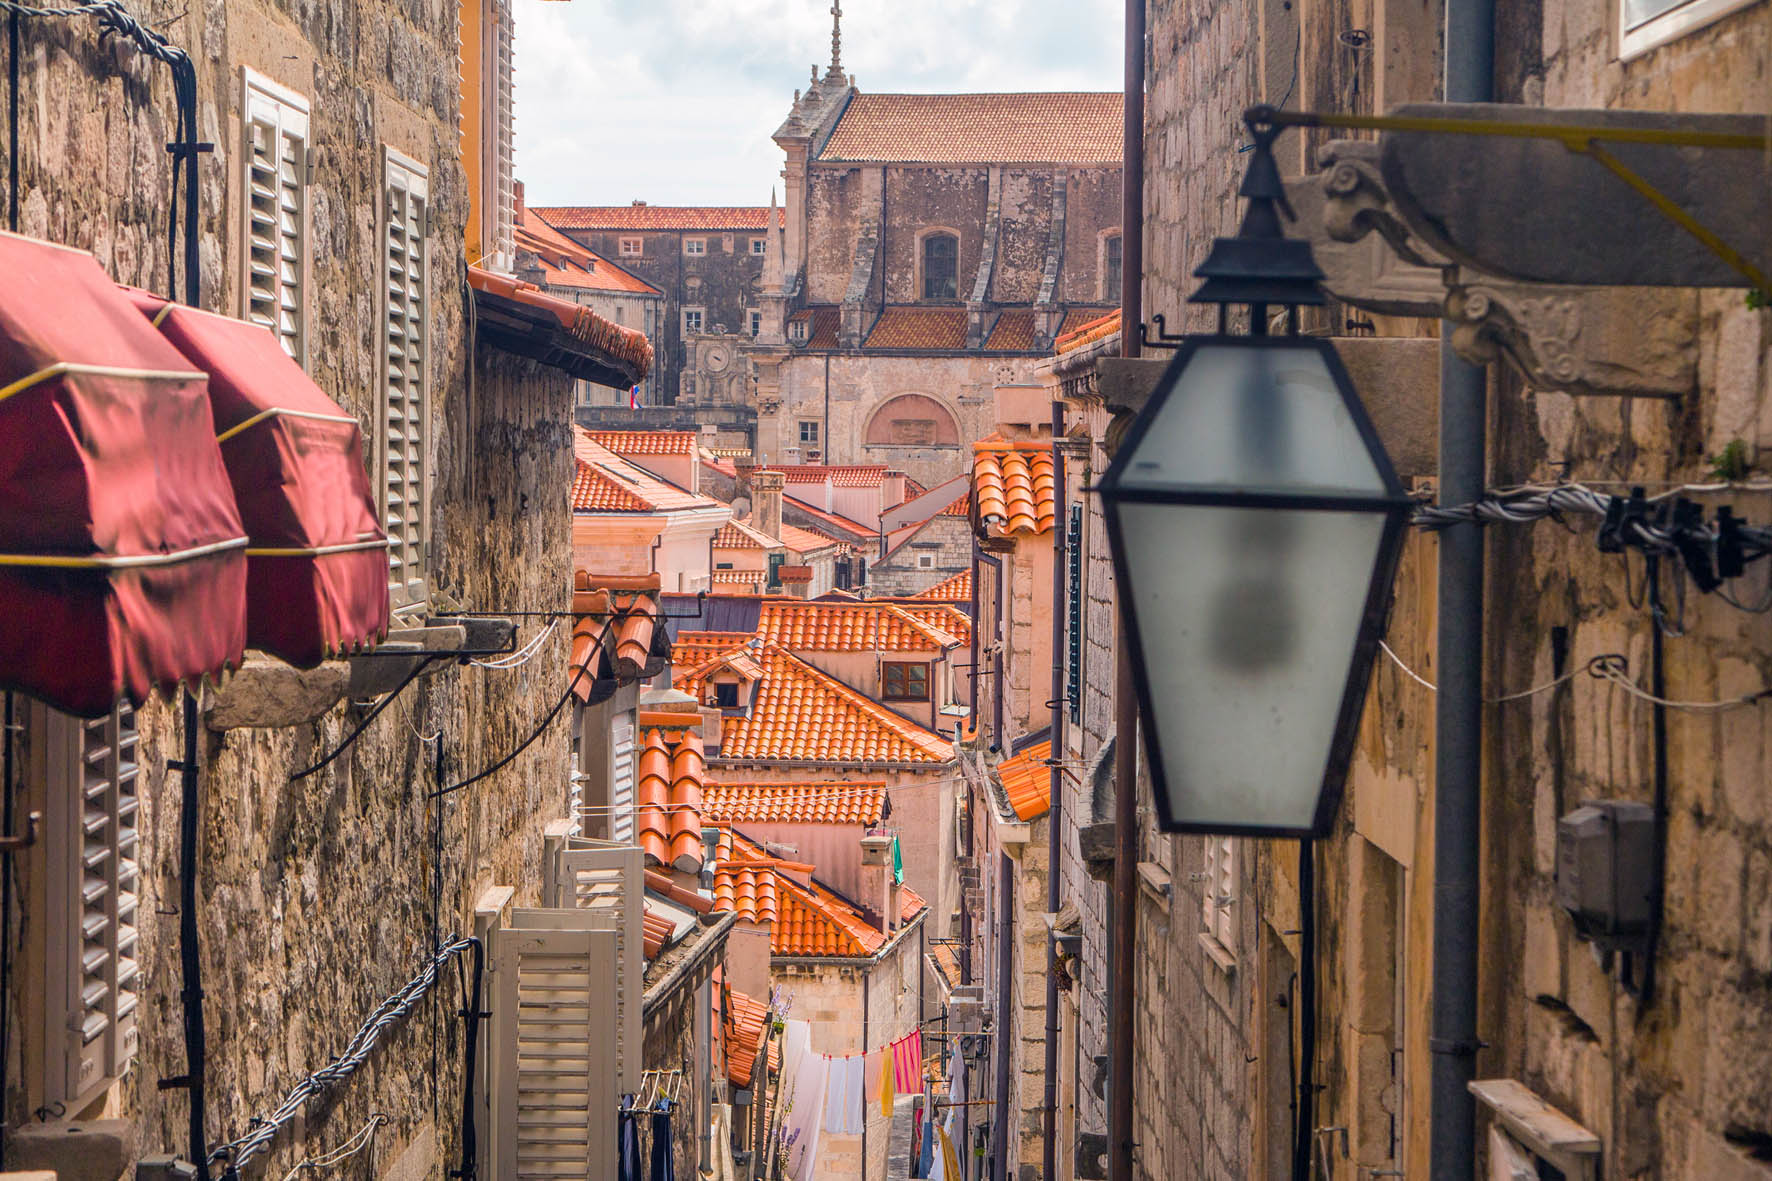 Looking through the narrow gap between the town's buildings at orange-tiled roofs in Old Town, Dubrovnik.